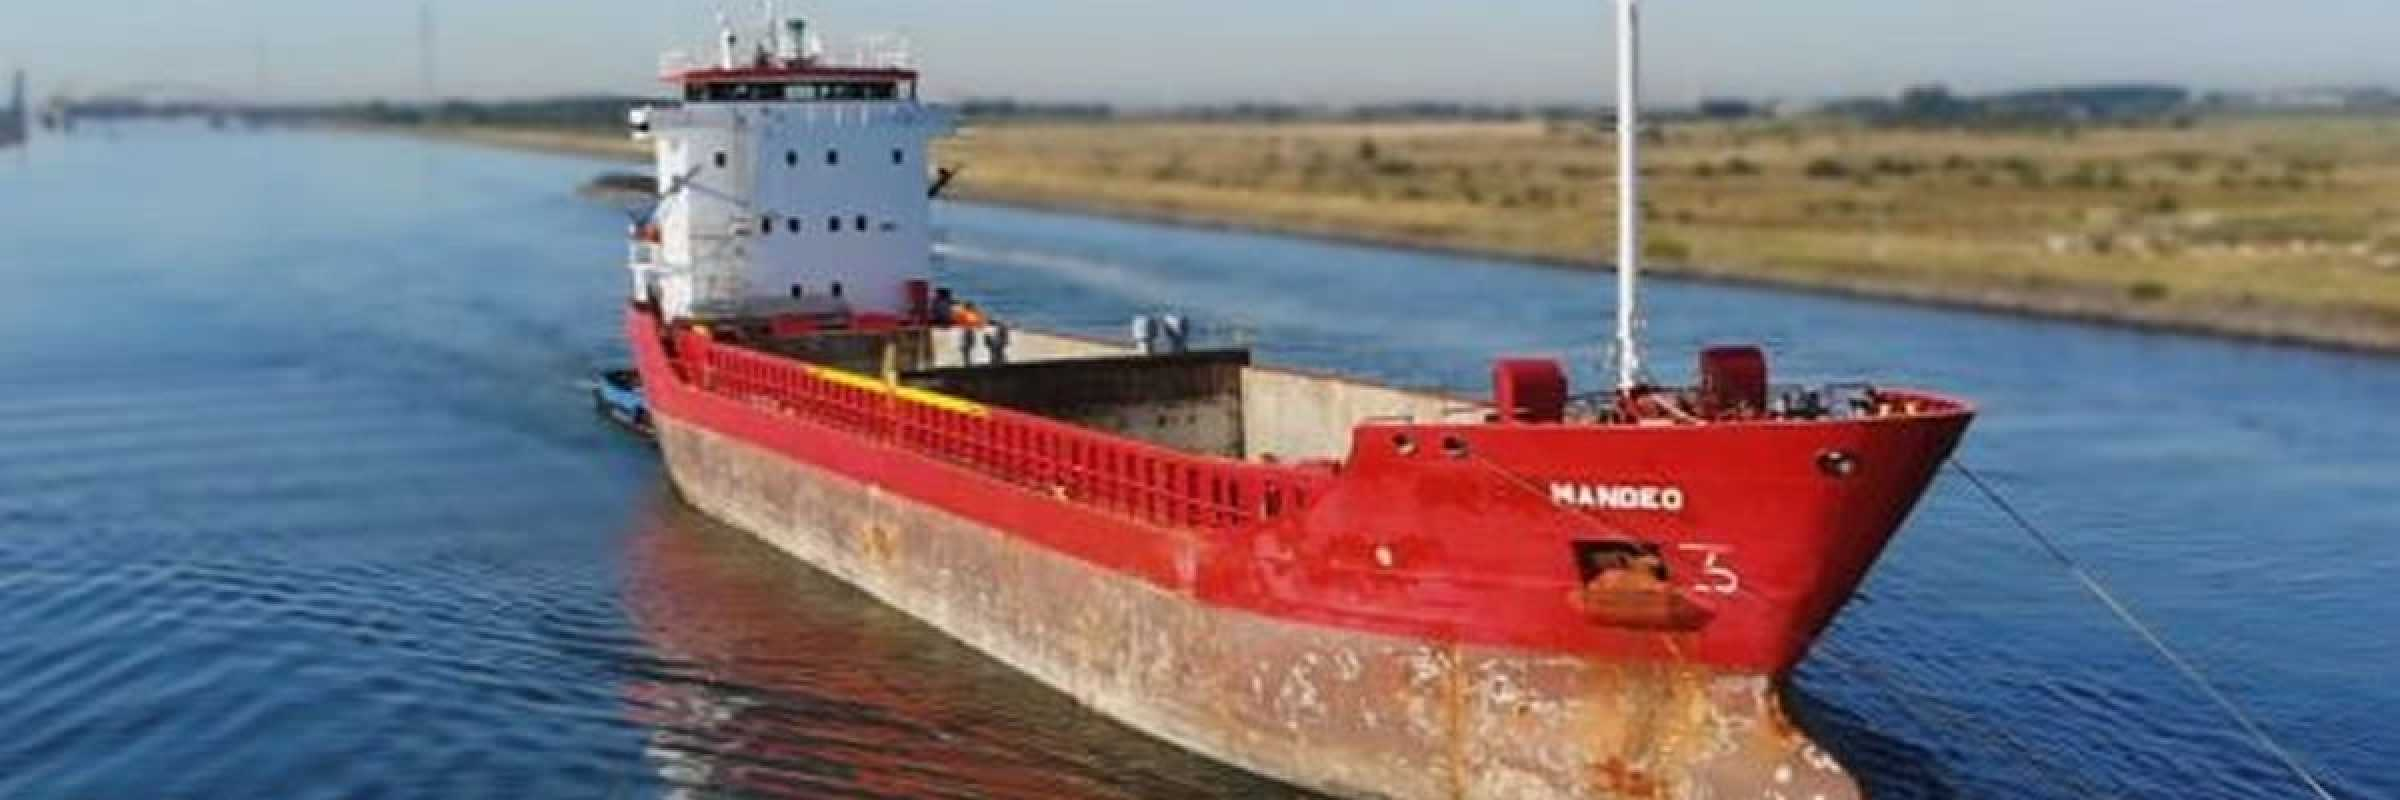 Dredger conversion made more efficient with PTO installation